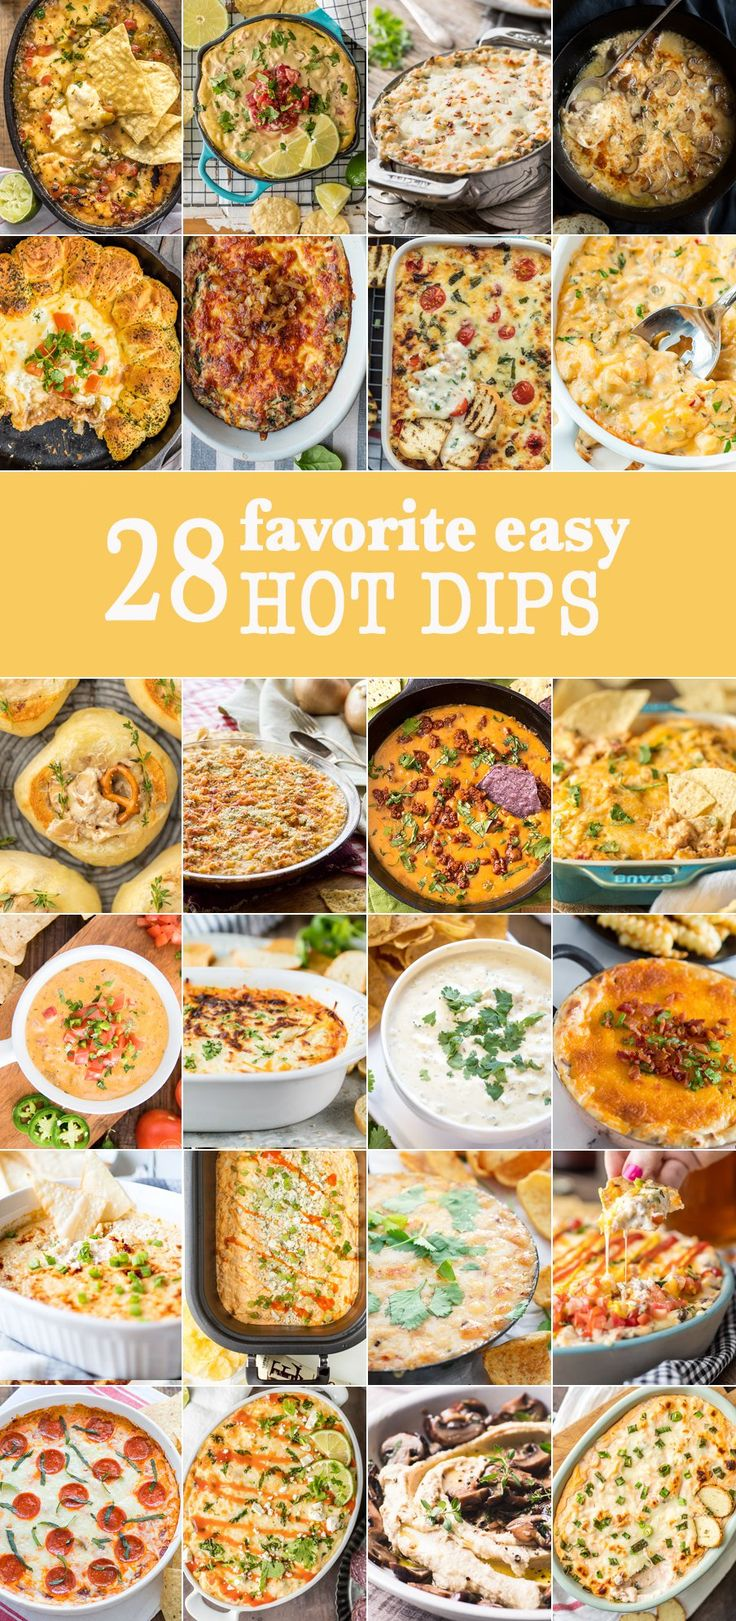 28 Favorite Easy Hot Dips JUST PERFECT FOR TAILGATING! Game Day eats have never been more delicious or simple! BEST DIP RECIPES EVER!